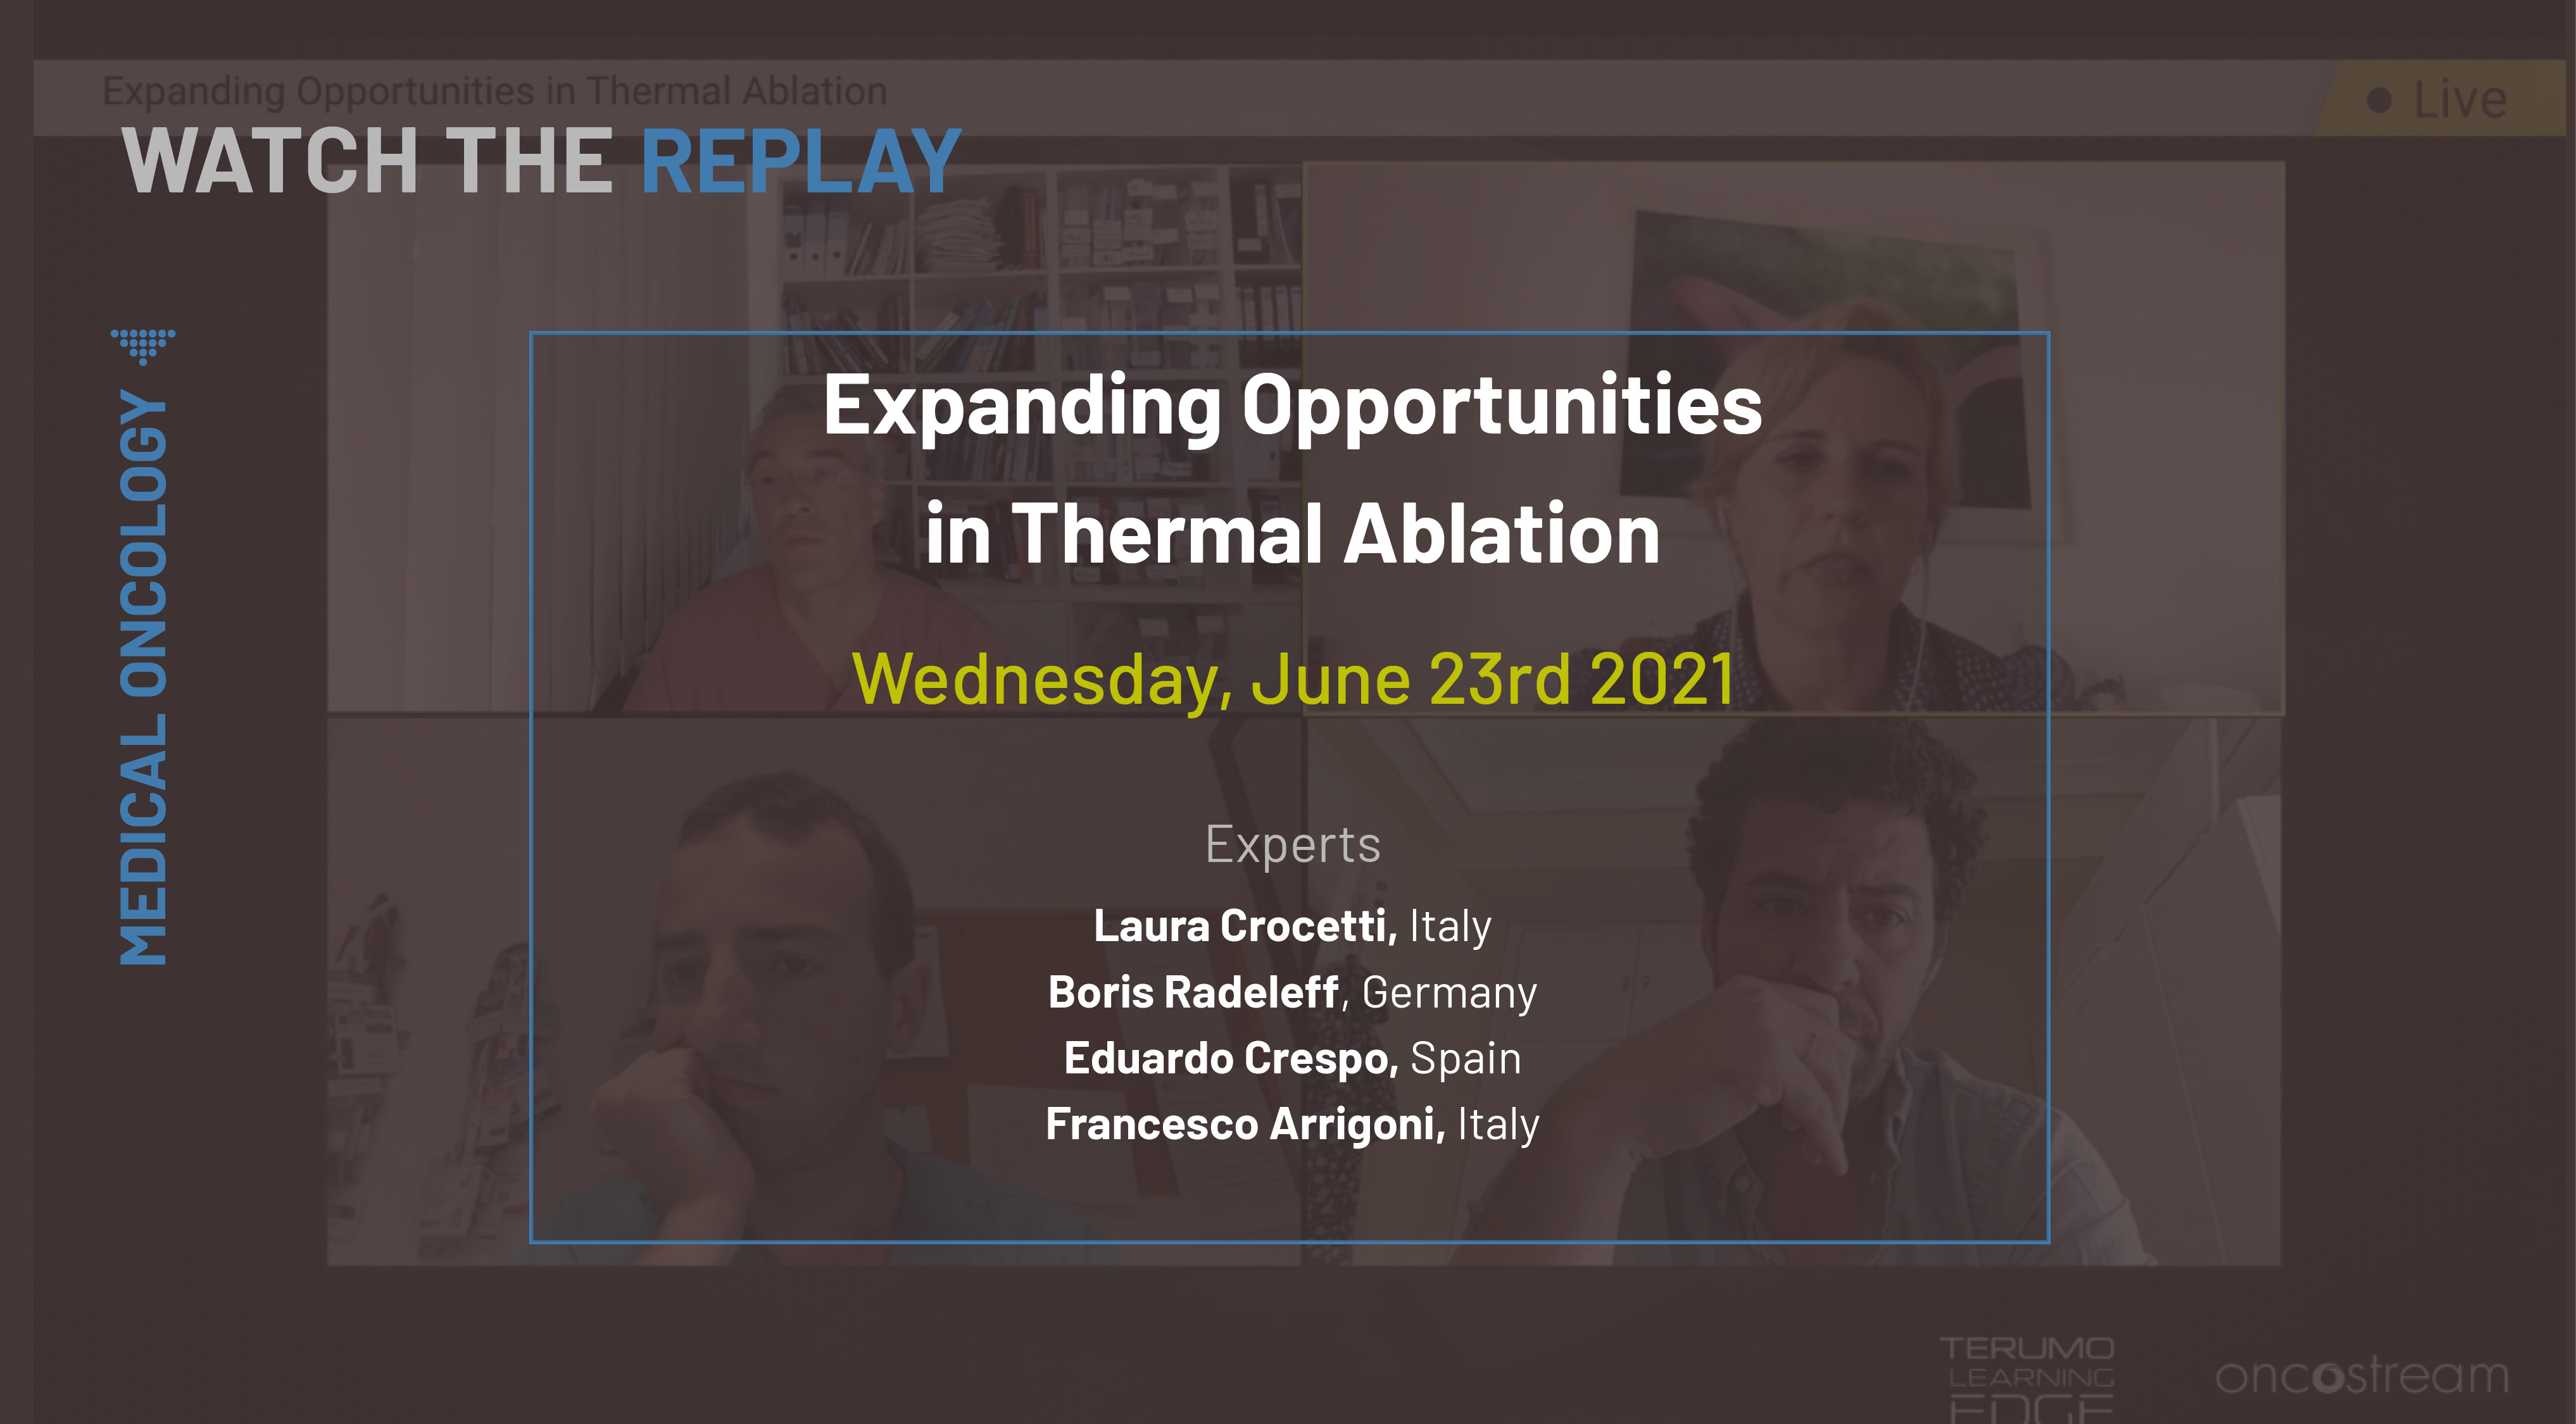 Expanding Opportunities in Thermal Ablation